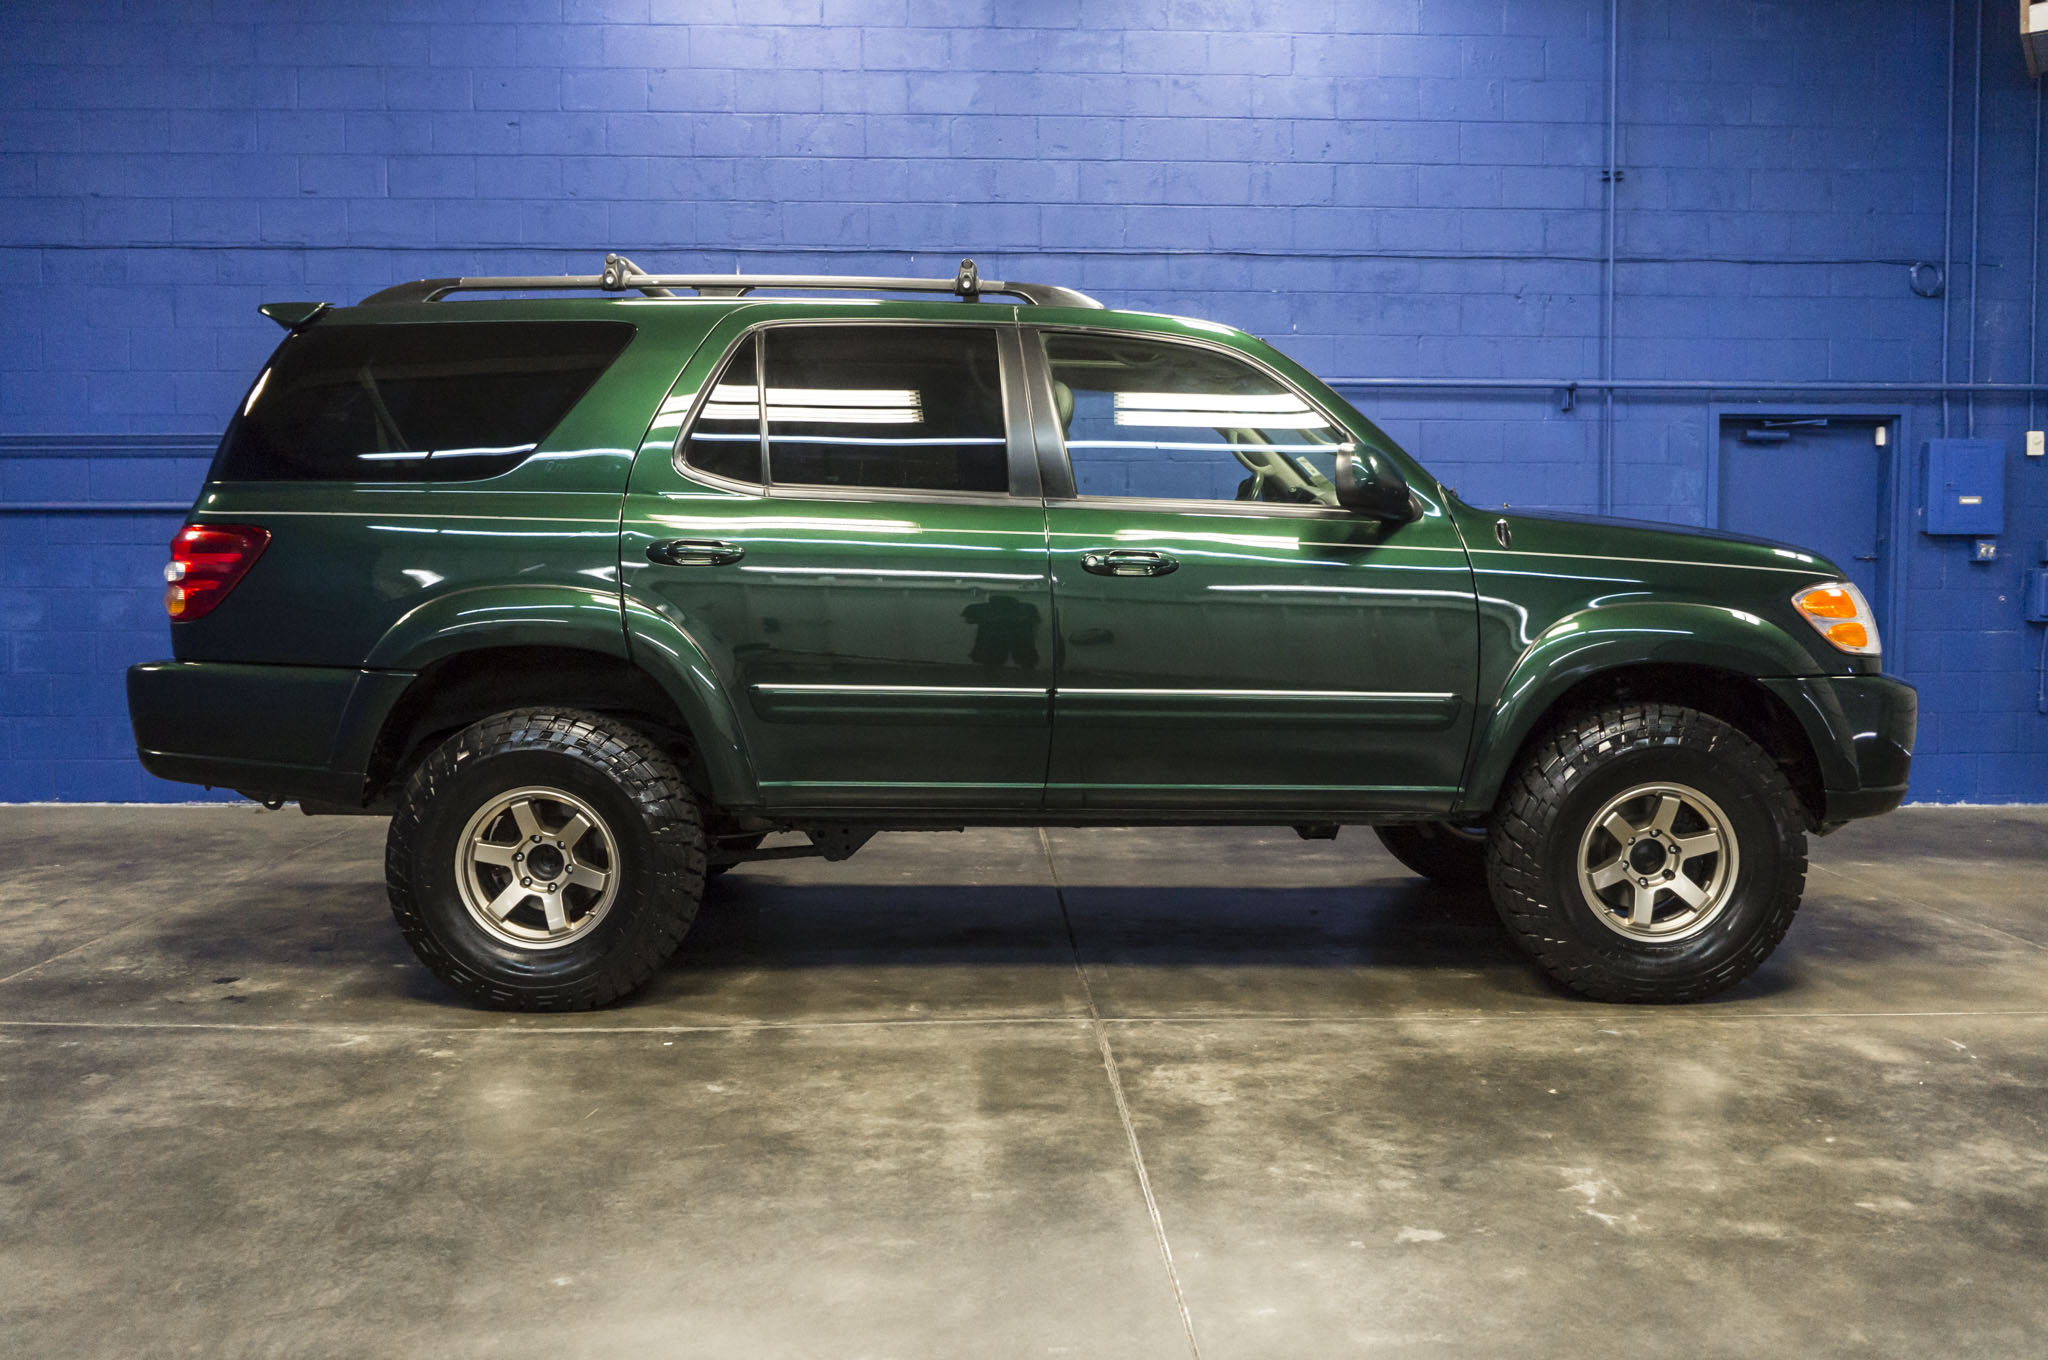 used 2002 toyota sequoia limited awd suv for sale northwest motorsport 2002 toyota sequoia limited awd suv